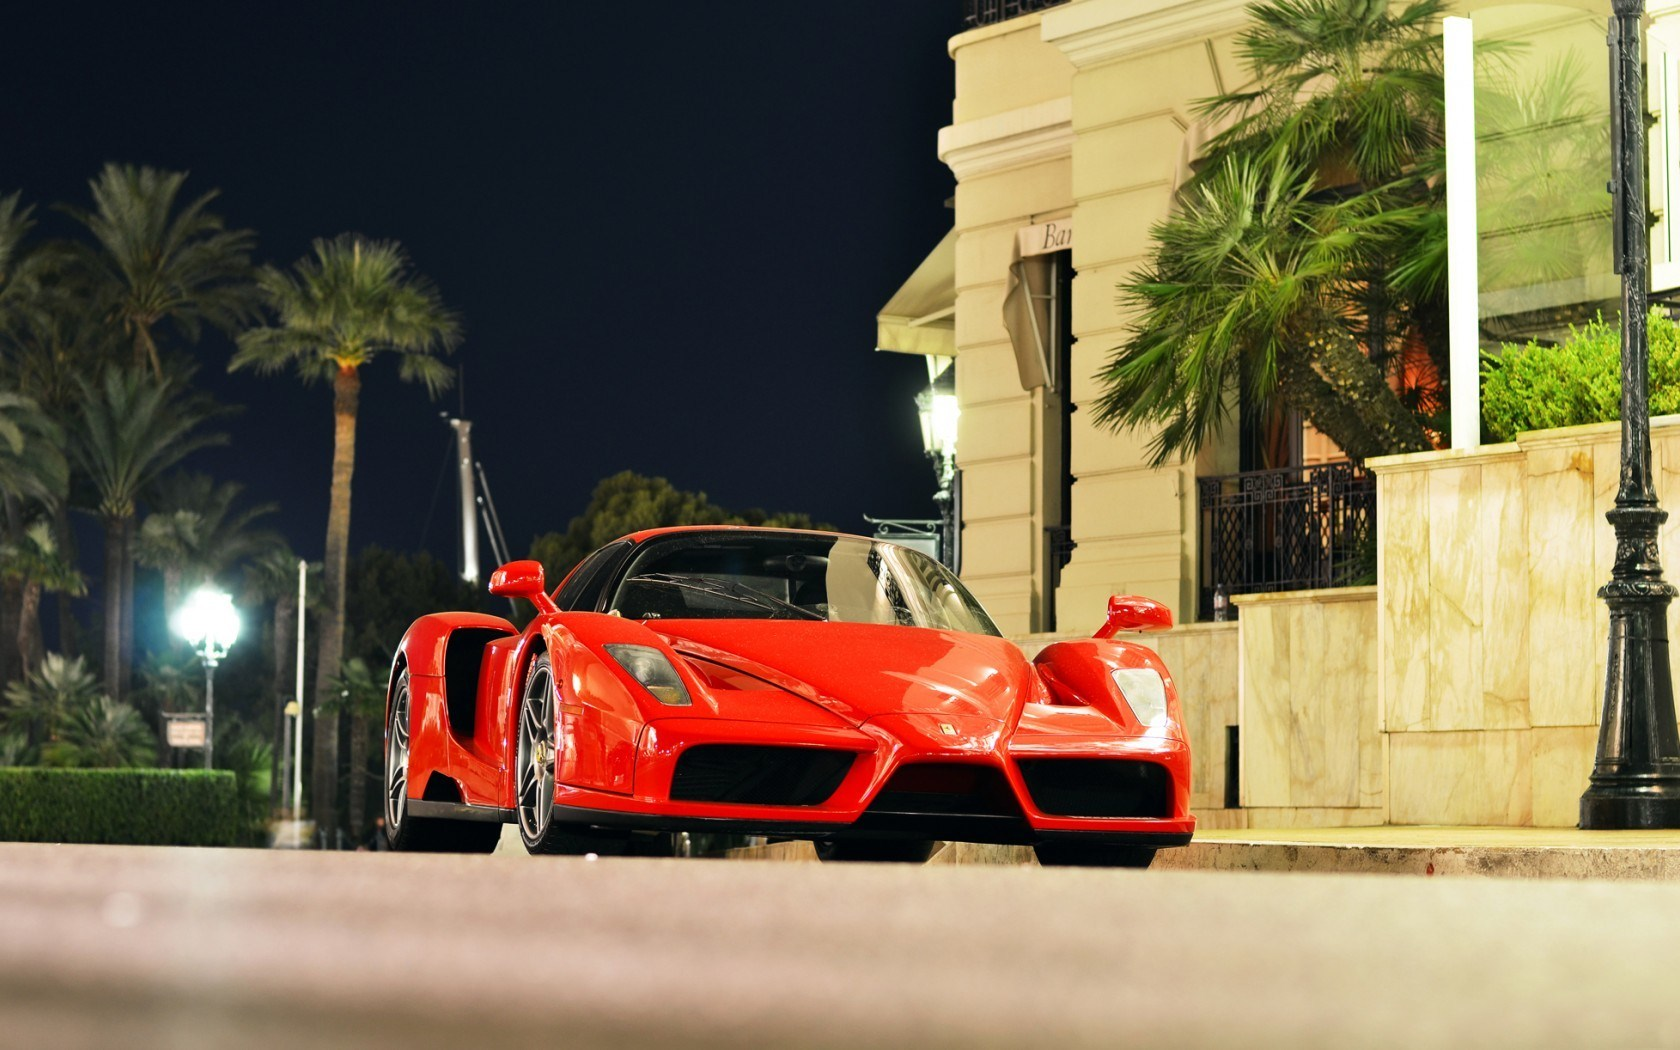 Red Ferrari Enzo City Monaco Night